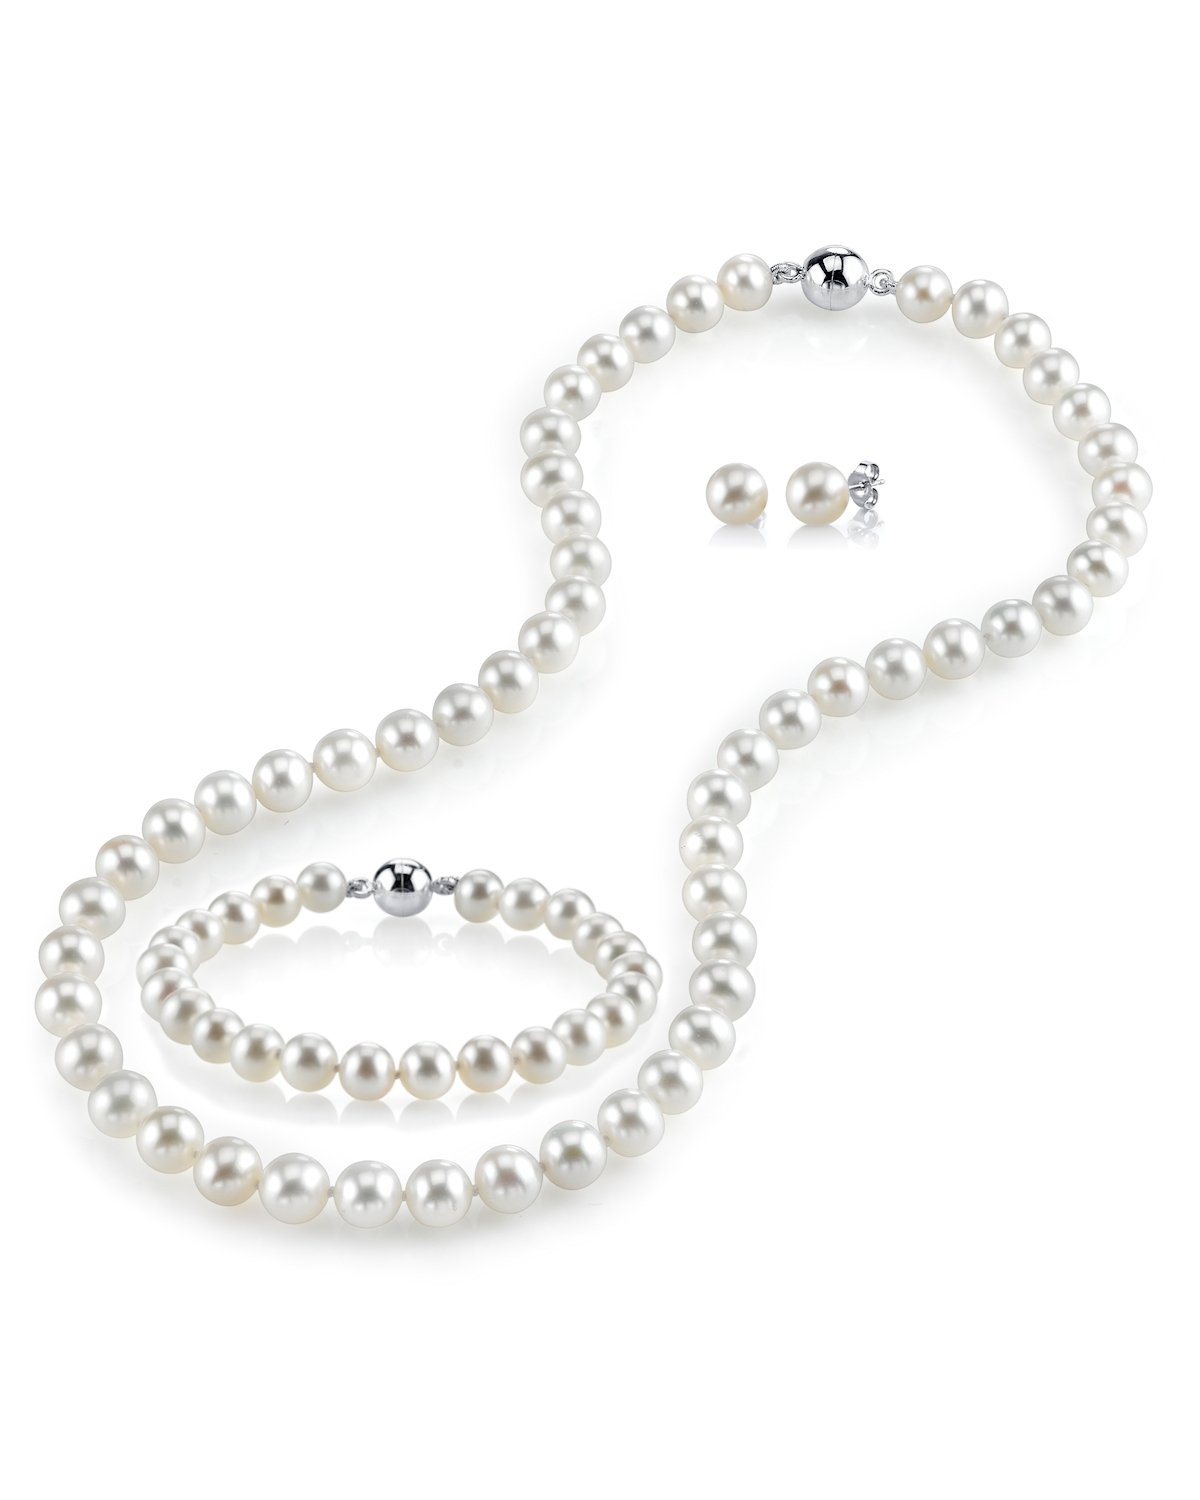 THE PEARL SOURCE AAAA Quality 8-9mm Round White Freshwater Cultured Pearl Necklace, Bracelet & Earrings Set with Sterling Silver Magnetic Clasp for Women